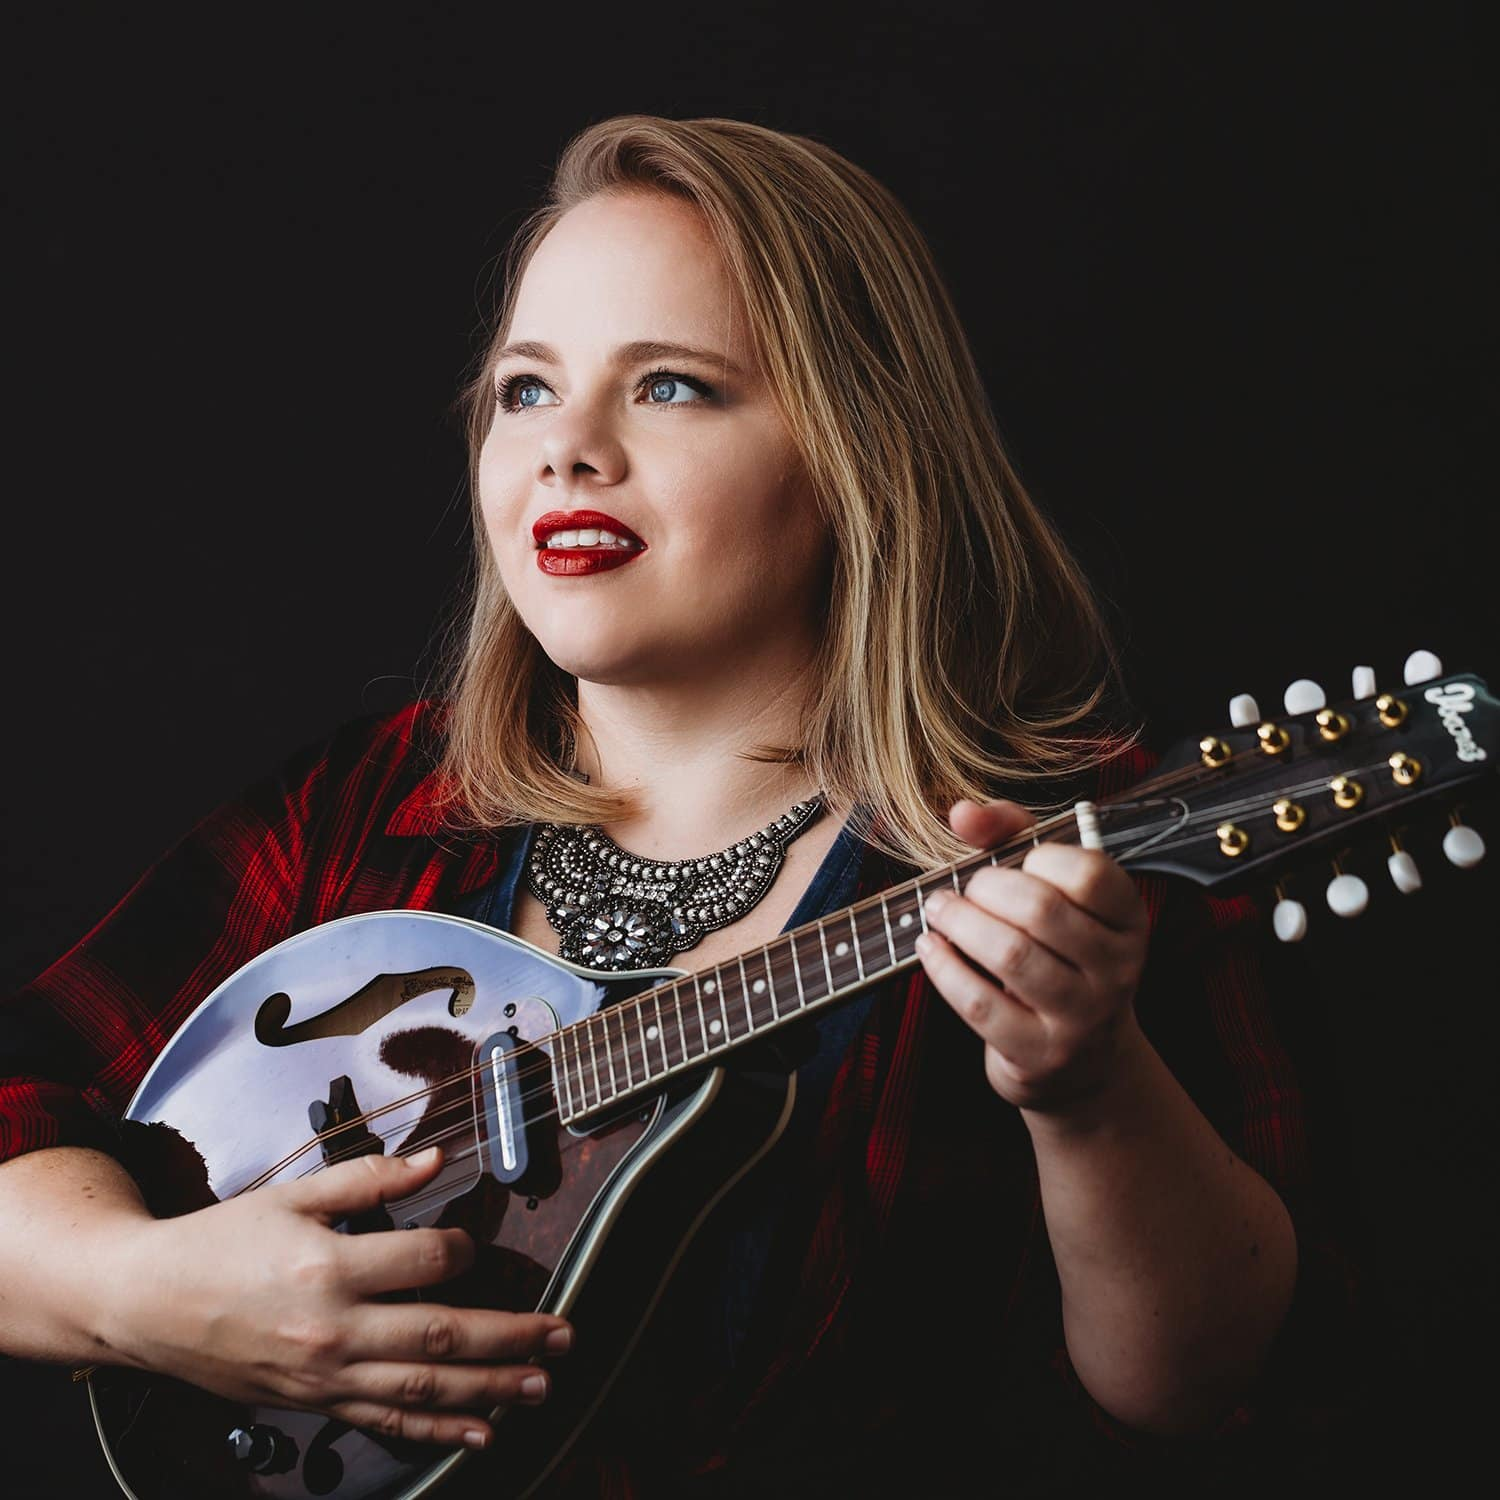 Claire Lipaulo wearing flannel and playing mandolin for personal brand